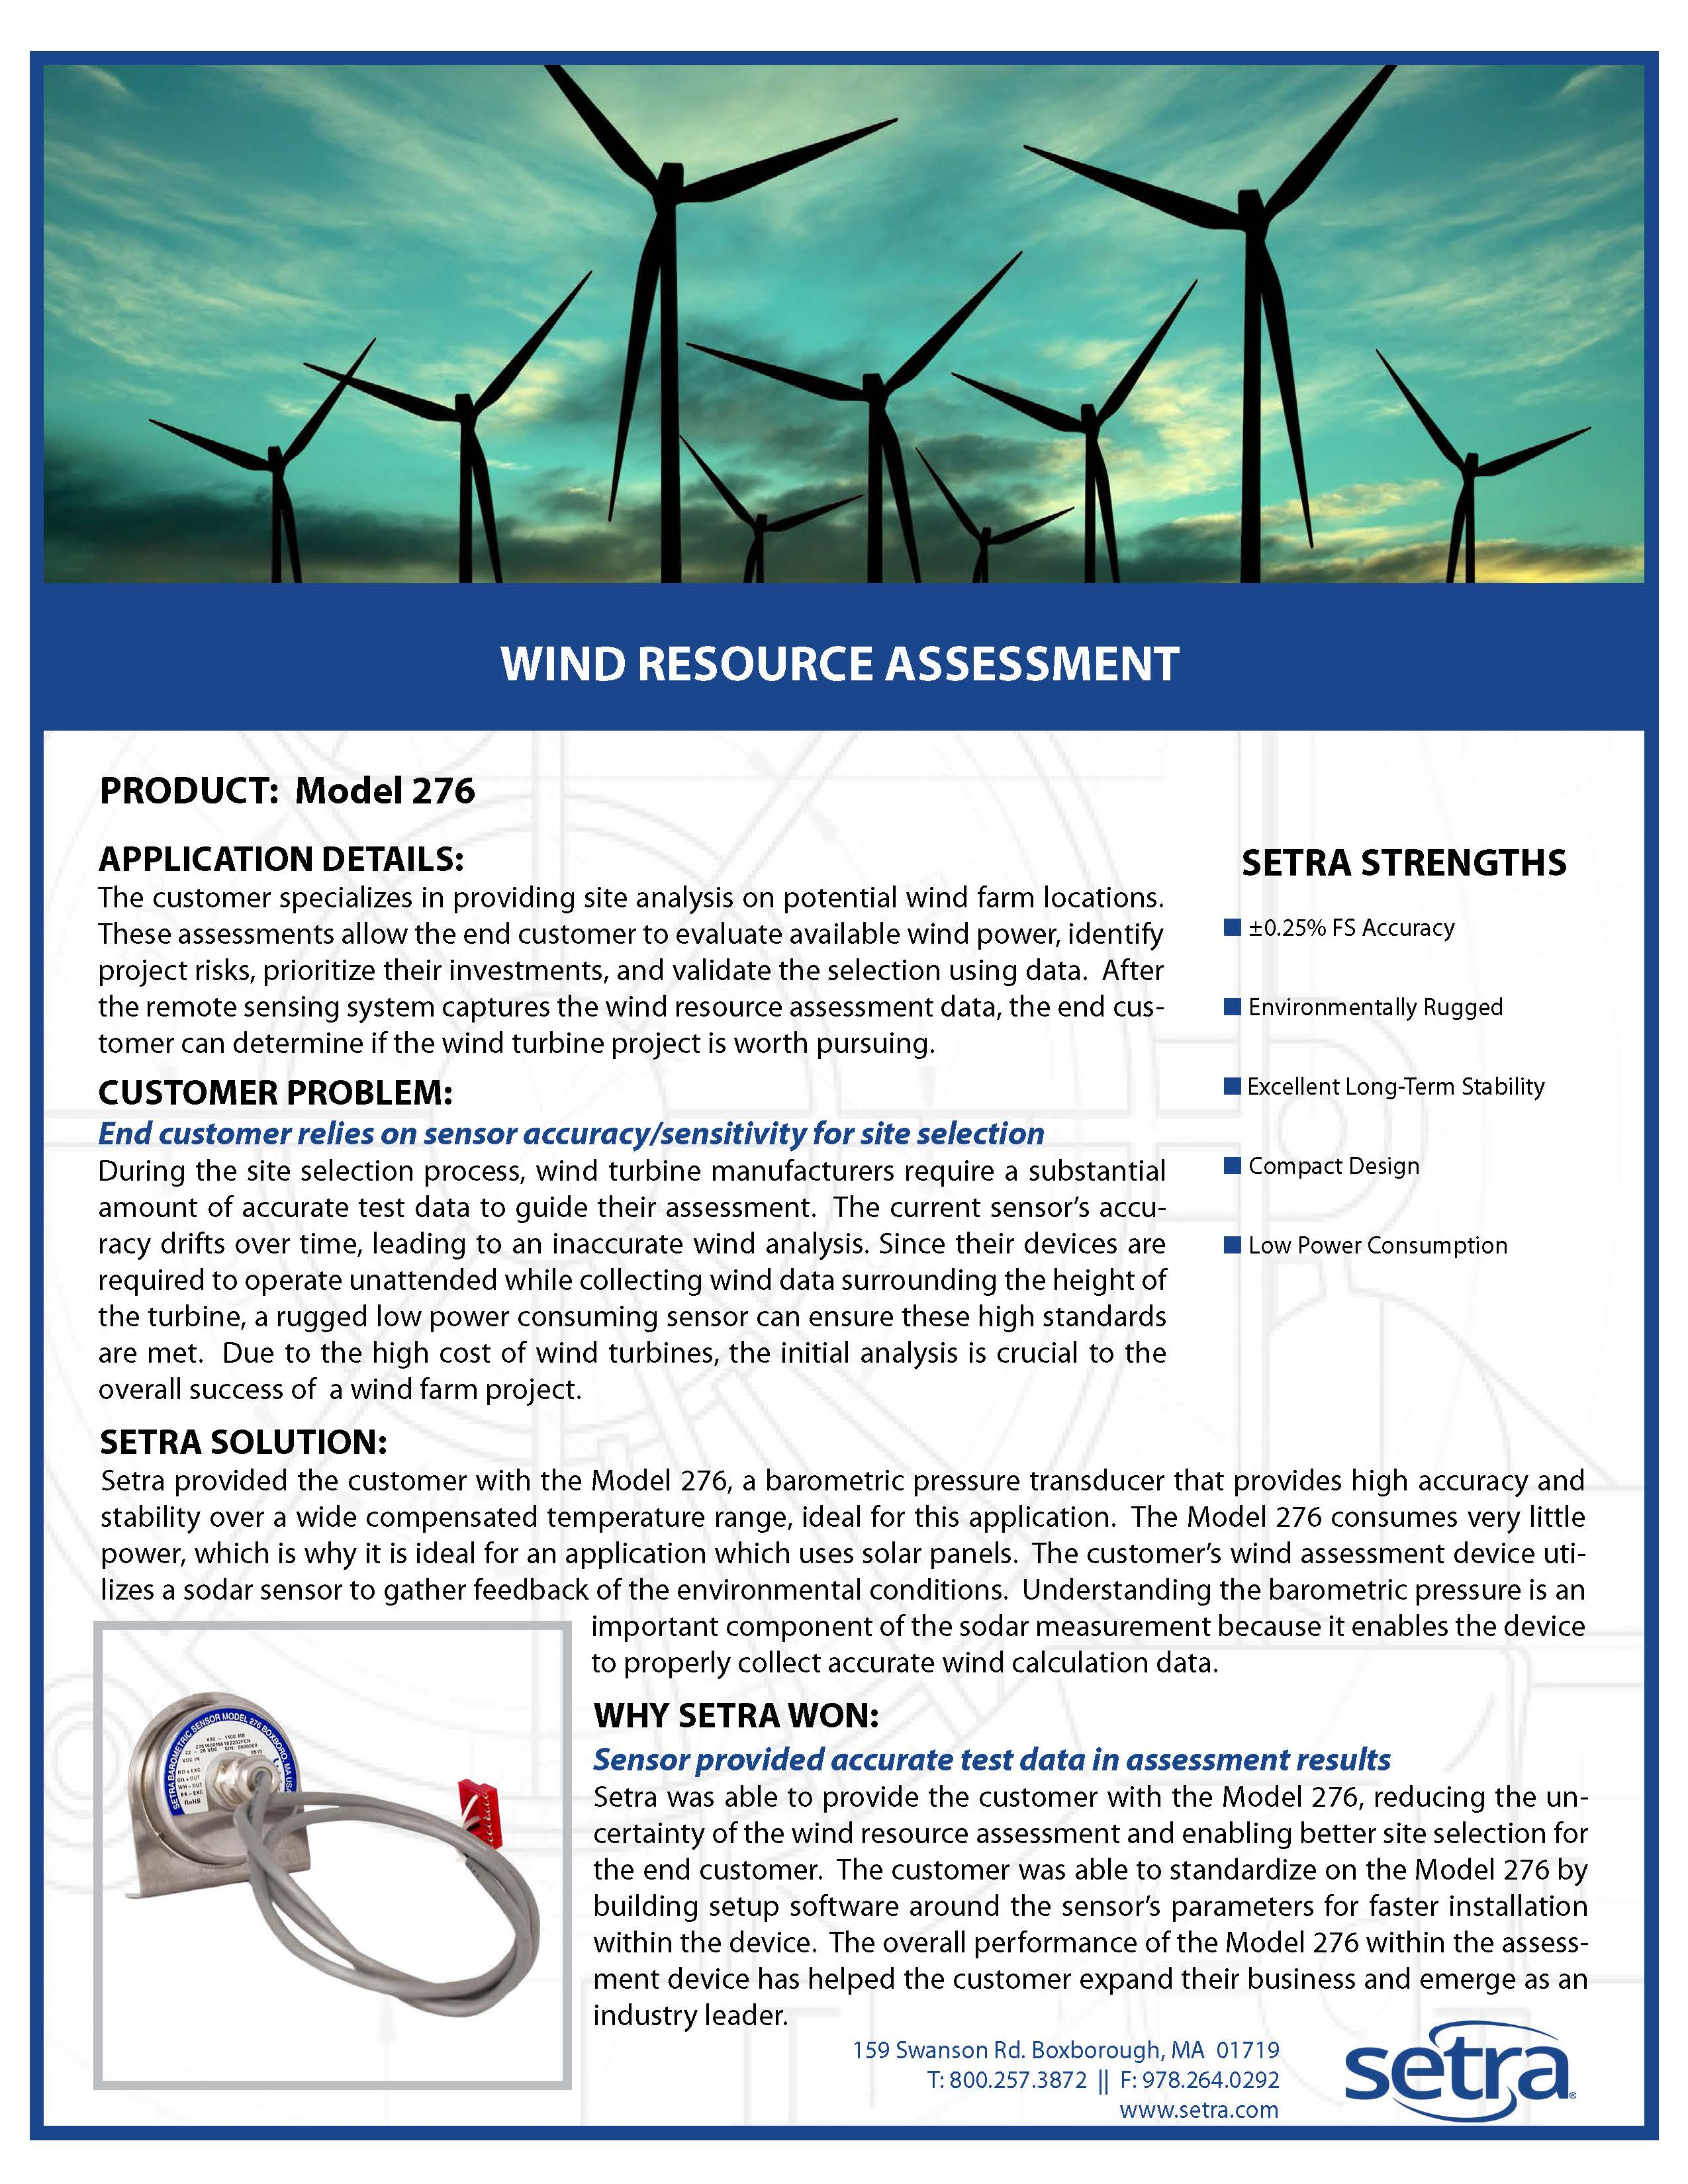 setra 276; renewable energy; wind monitoring; pressure measurement; pressure transducers